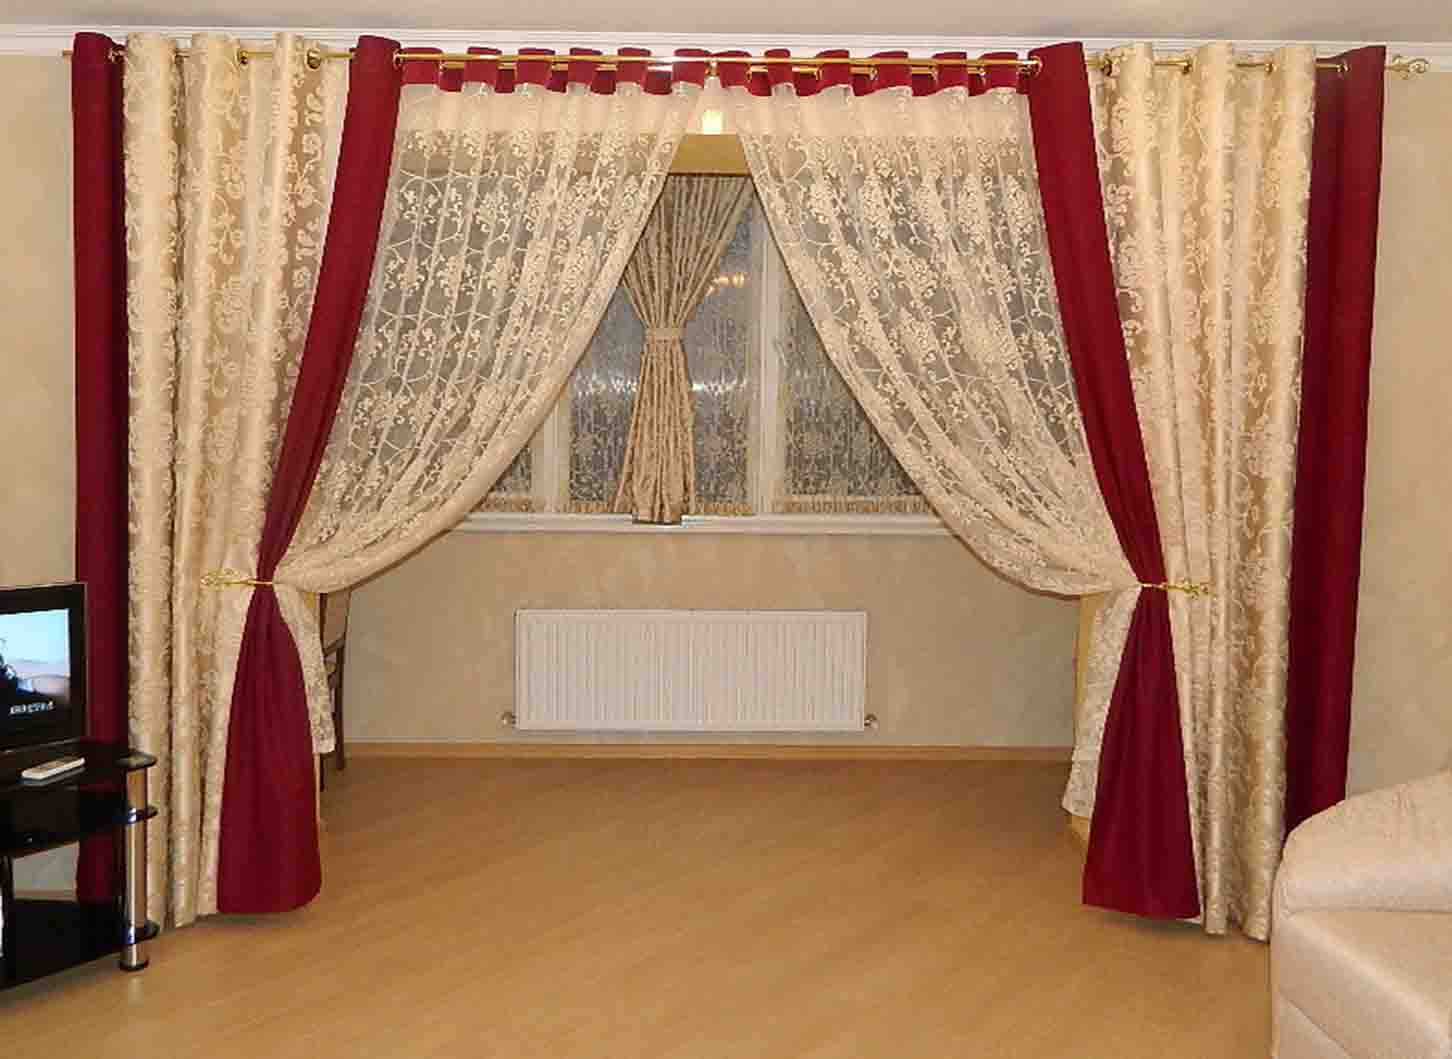 Curtain Ideas Top 50 Curtain Design Ideas For Bedroom Modern Interior Designs 2019